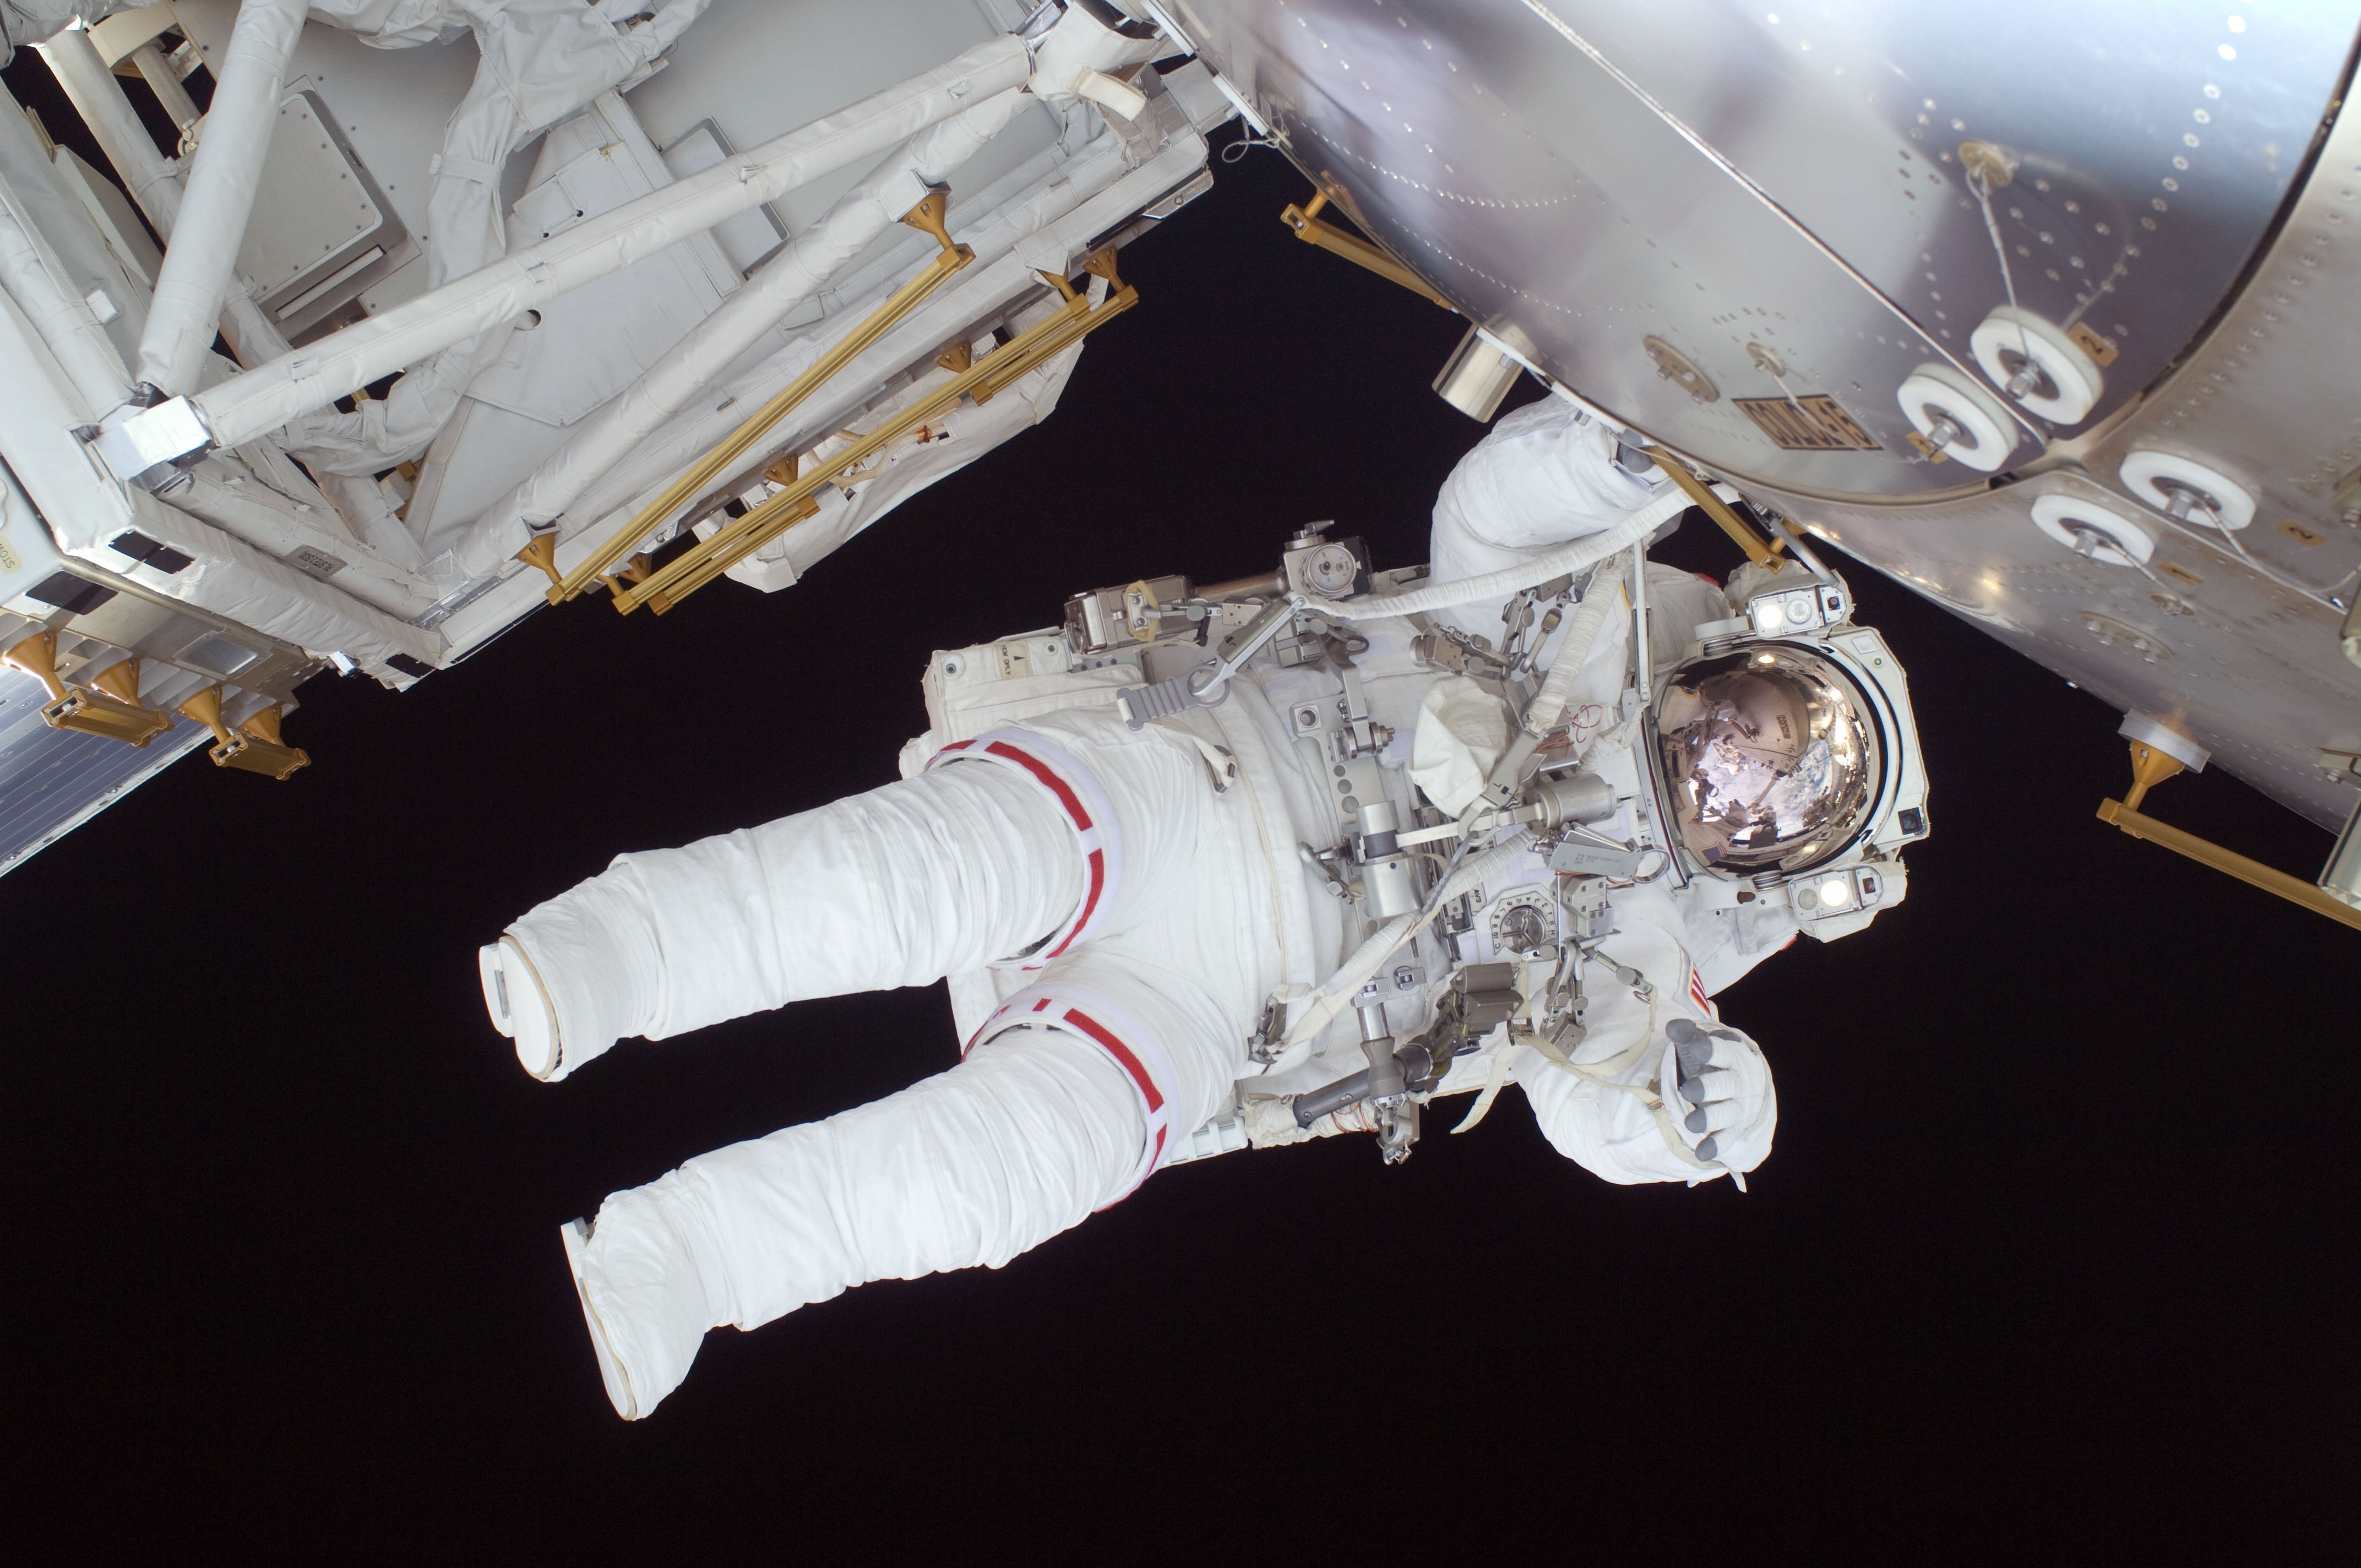 Person in White Astronaut Suit, Astronaut, Man, Person, Research, HQ Photo